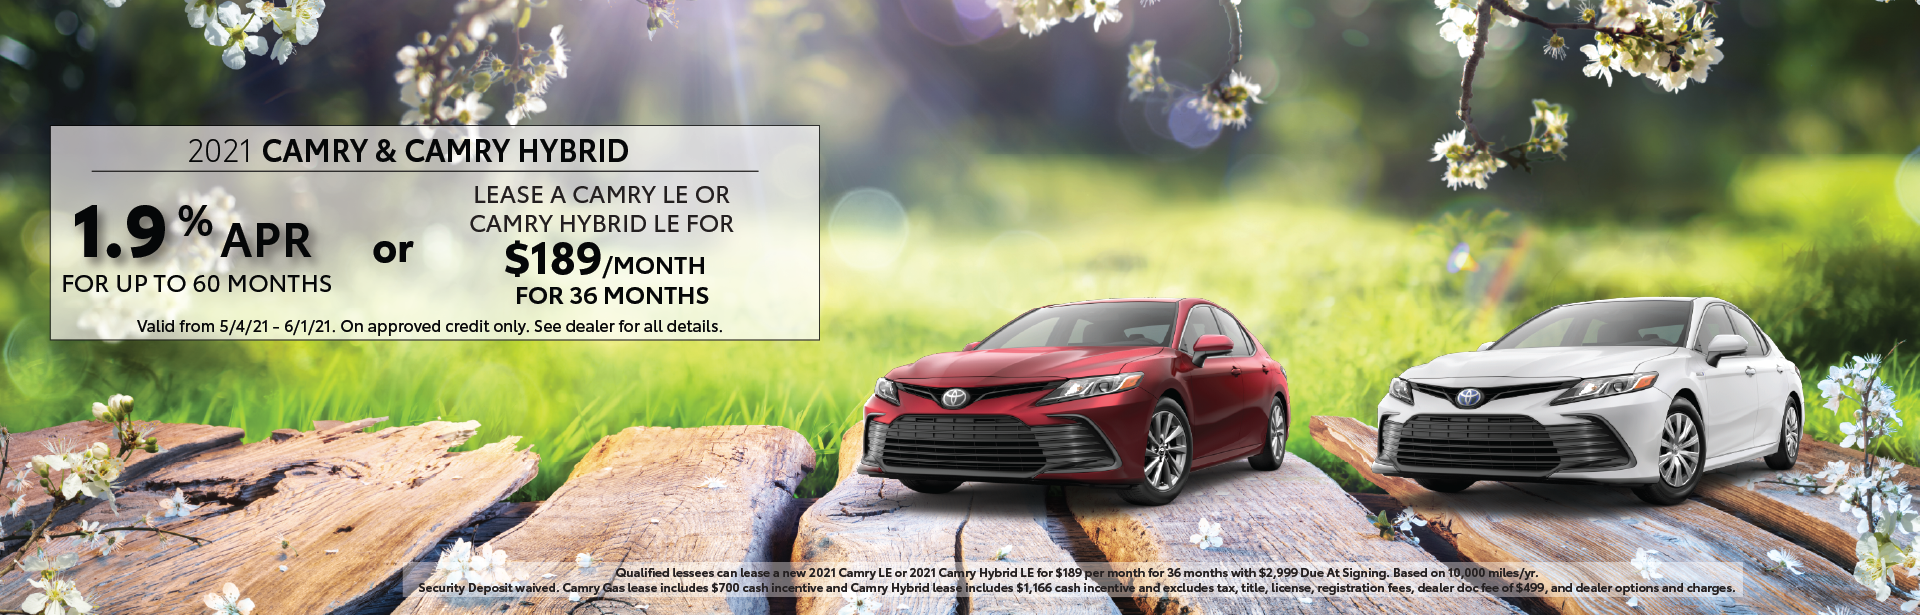 May 2021 – Camry Offers – Lynch Homepage